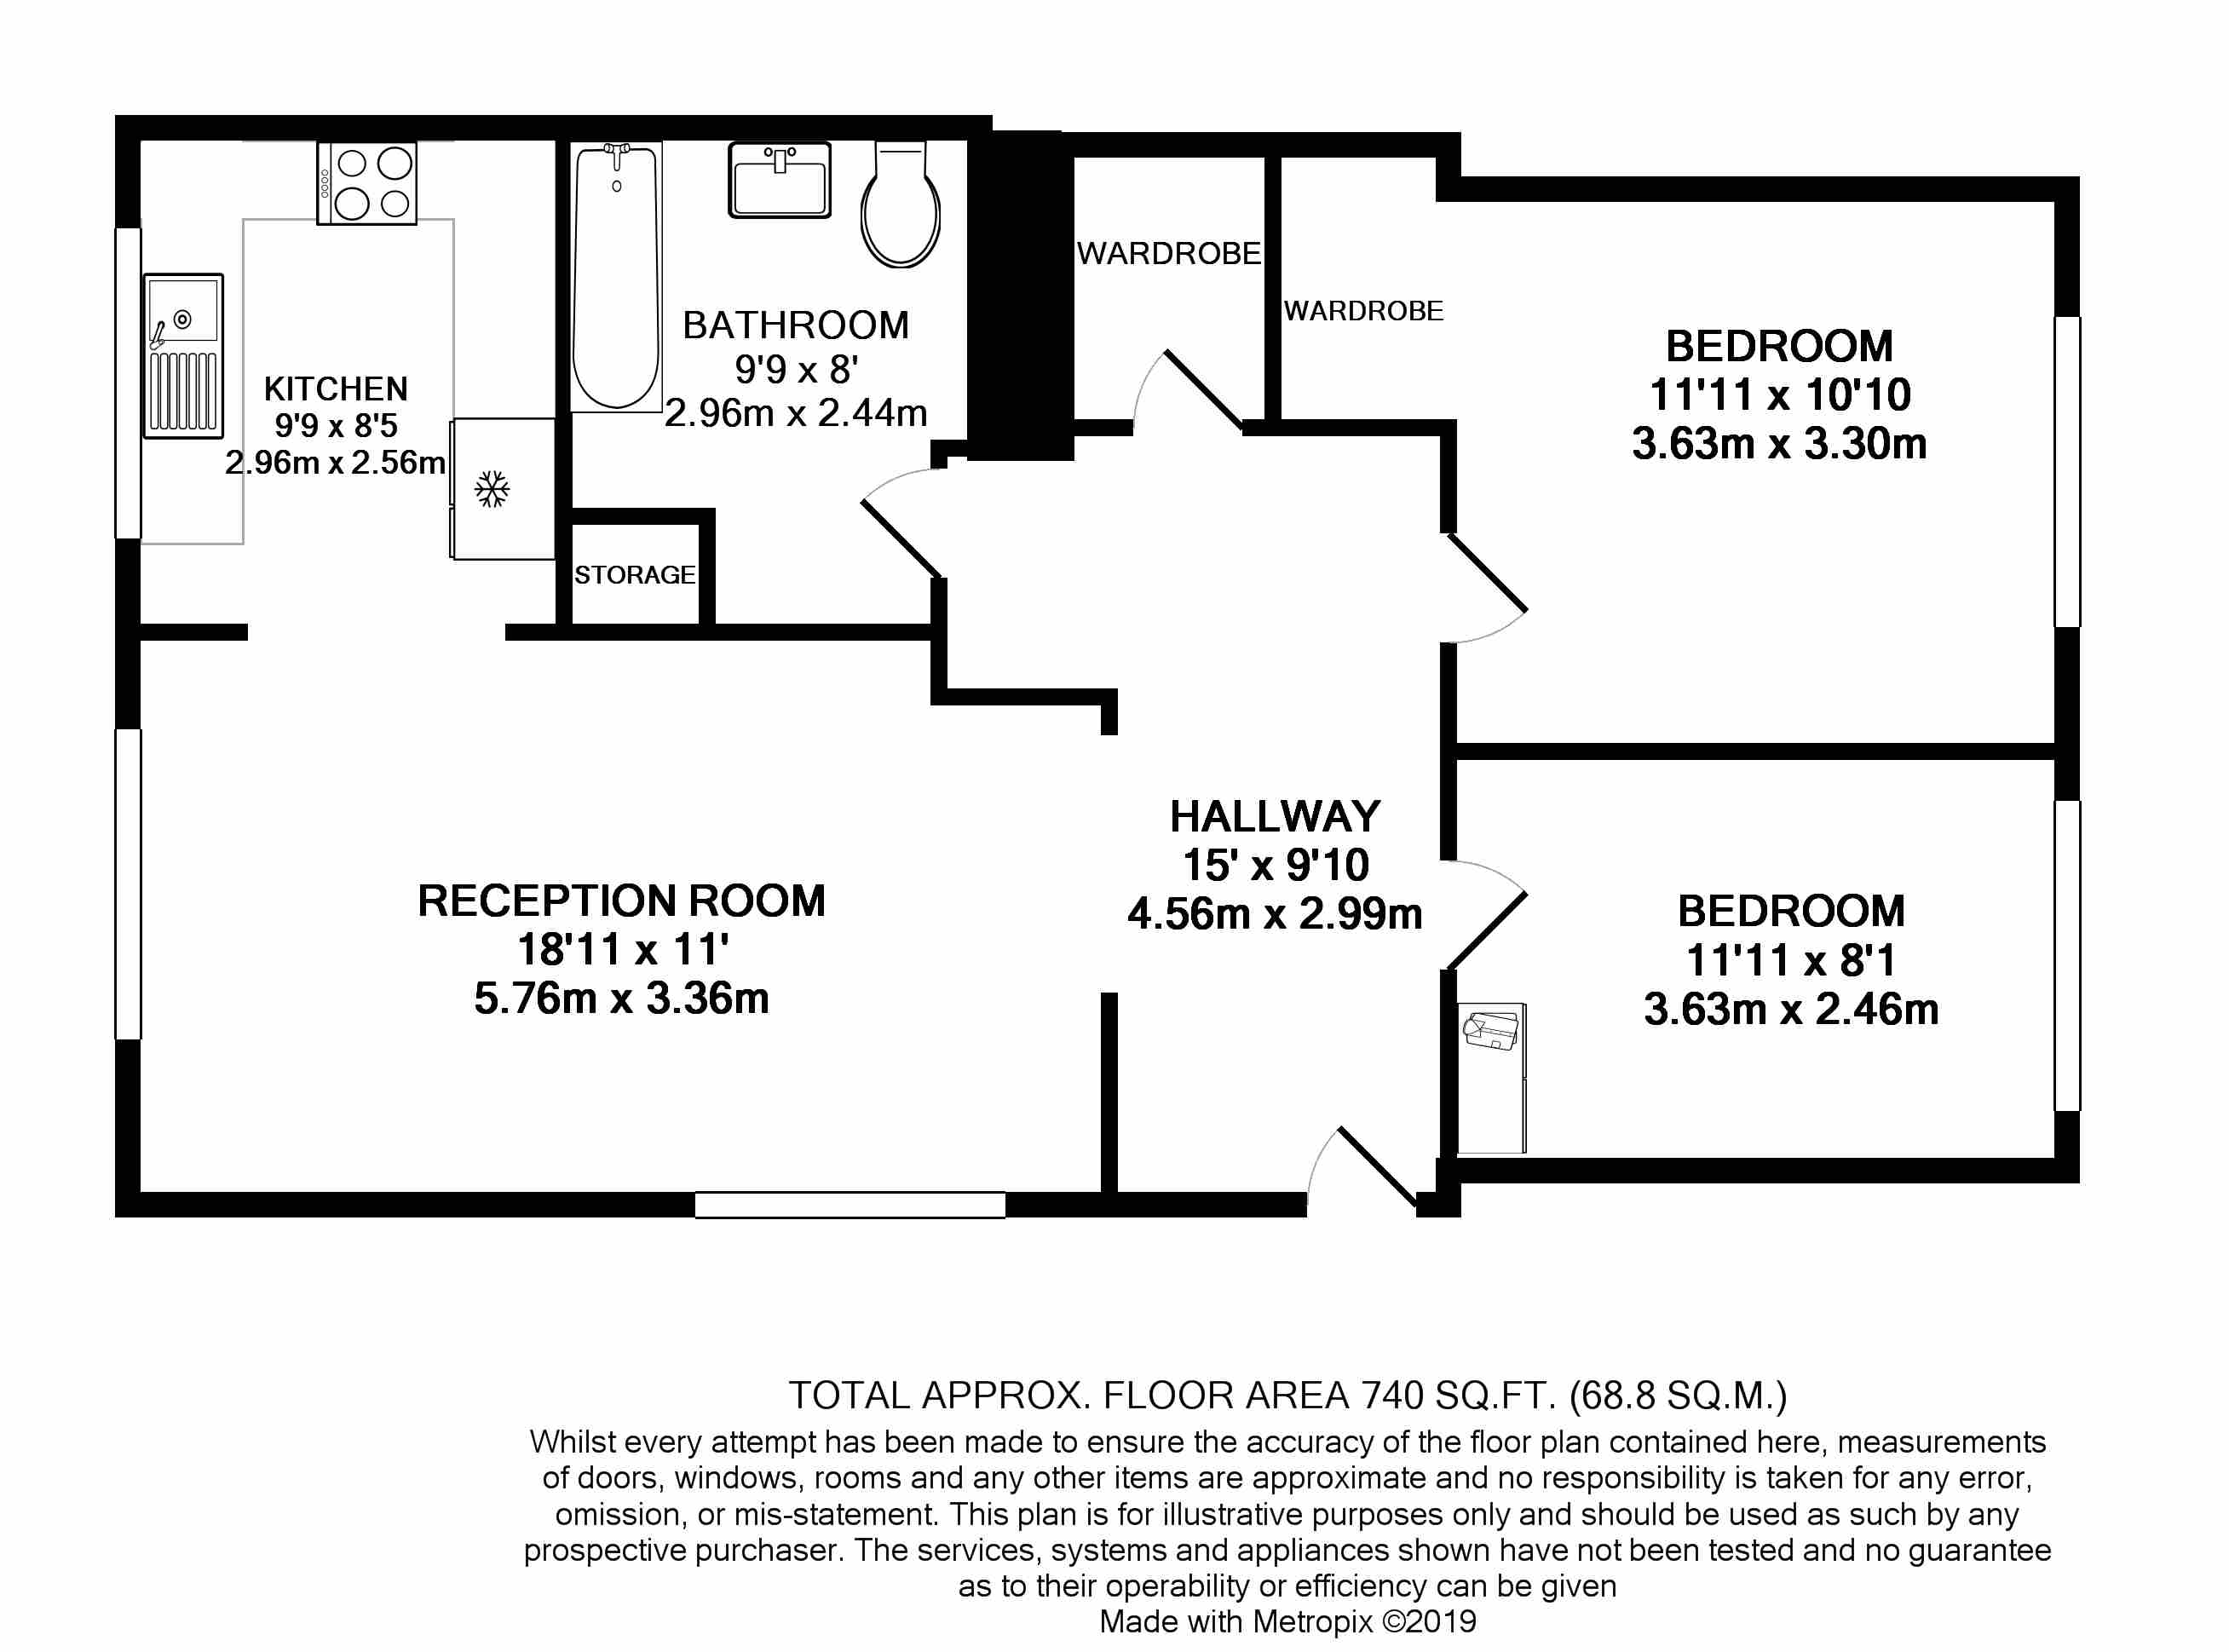 Floorplans For Conifer Way, Wembley, Middlesex,HA0 3QR